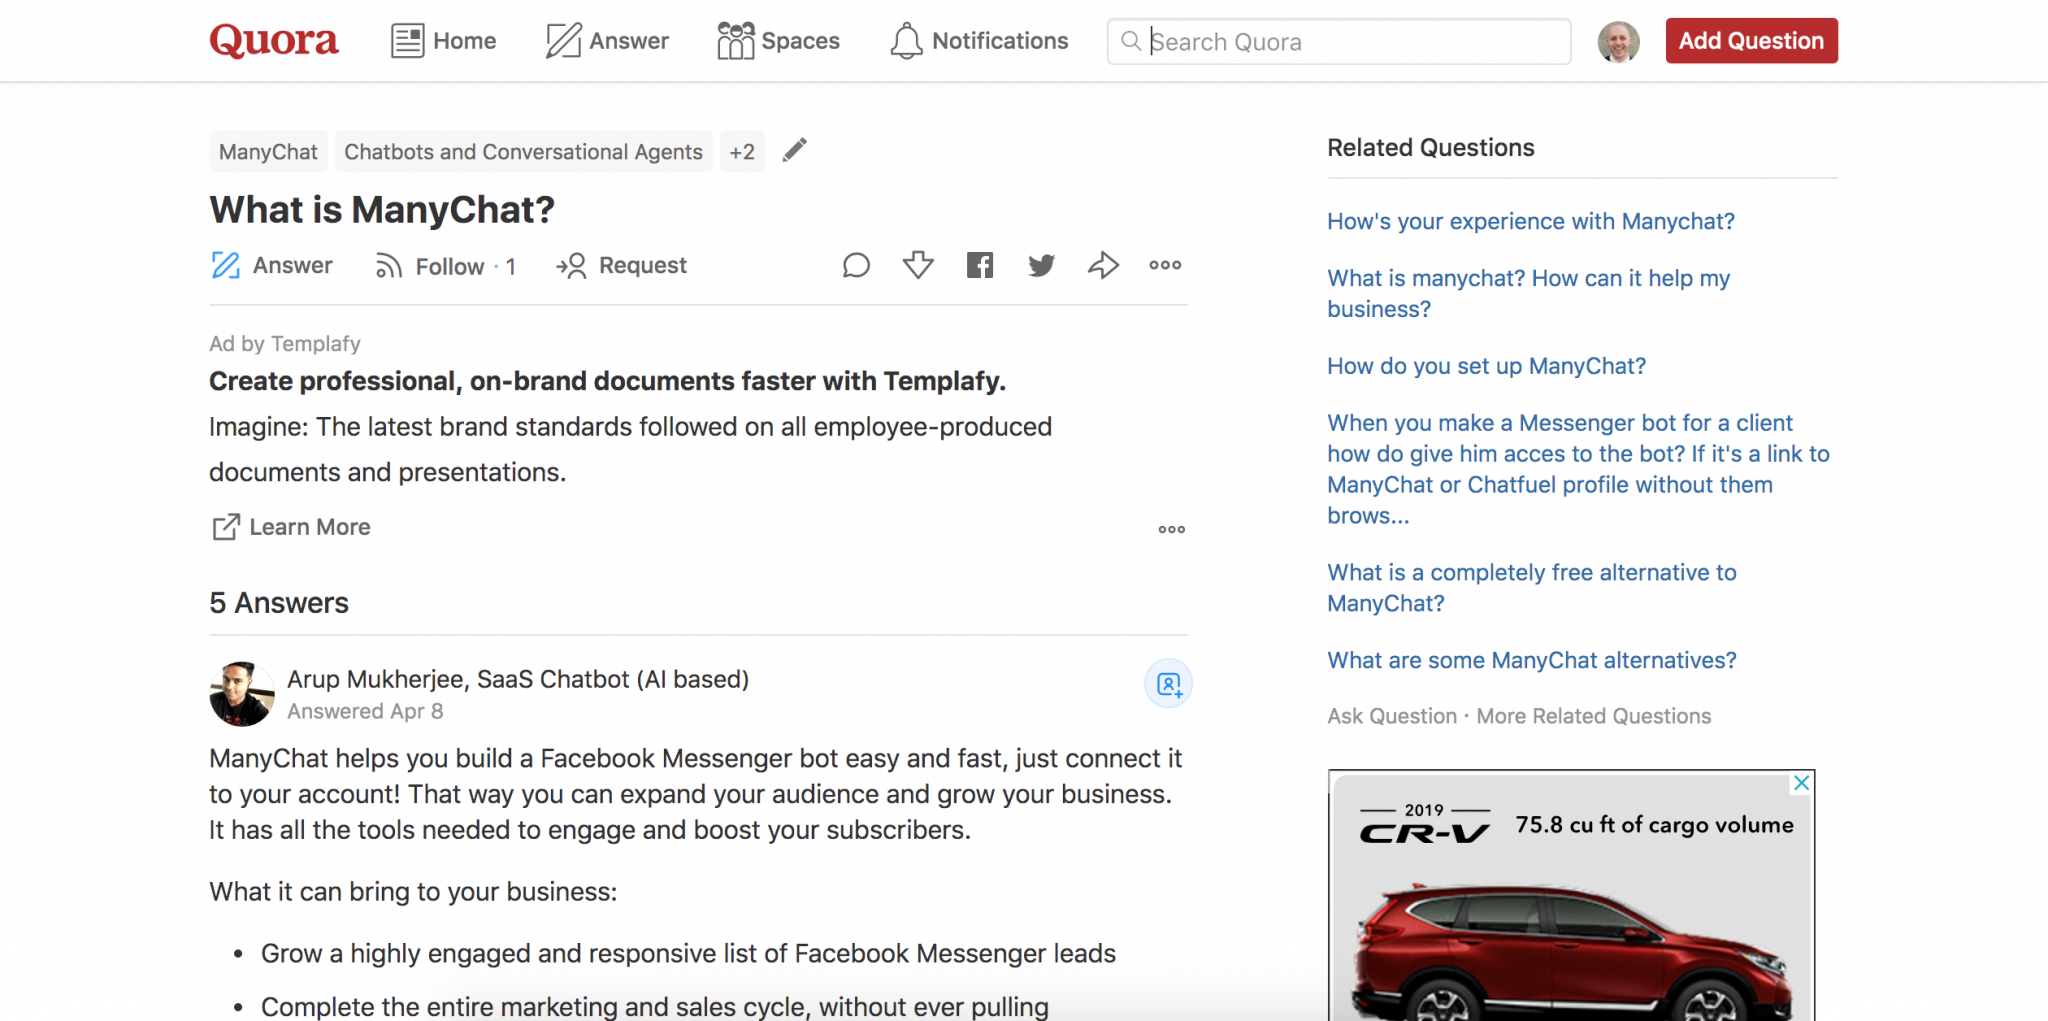 Example of Quora as a Type of Social Media